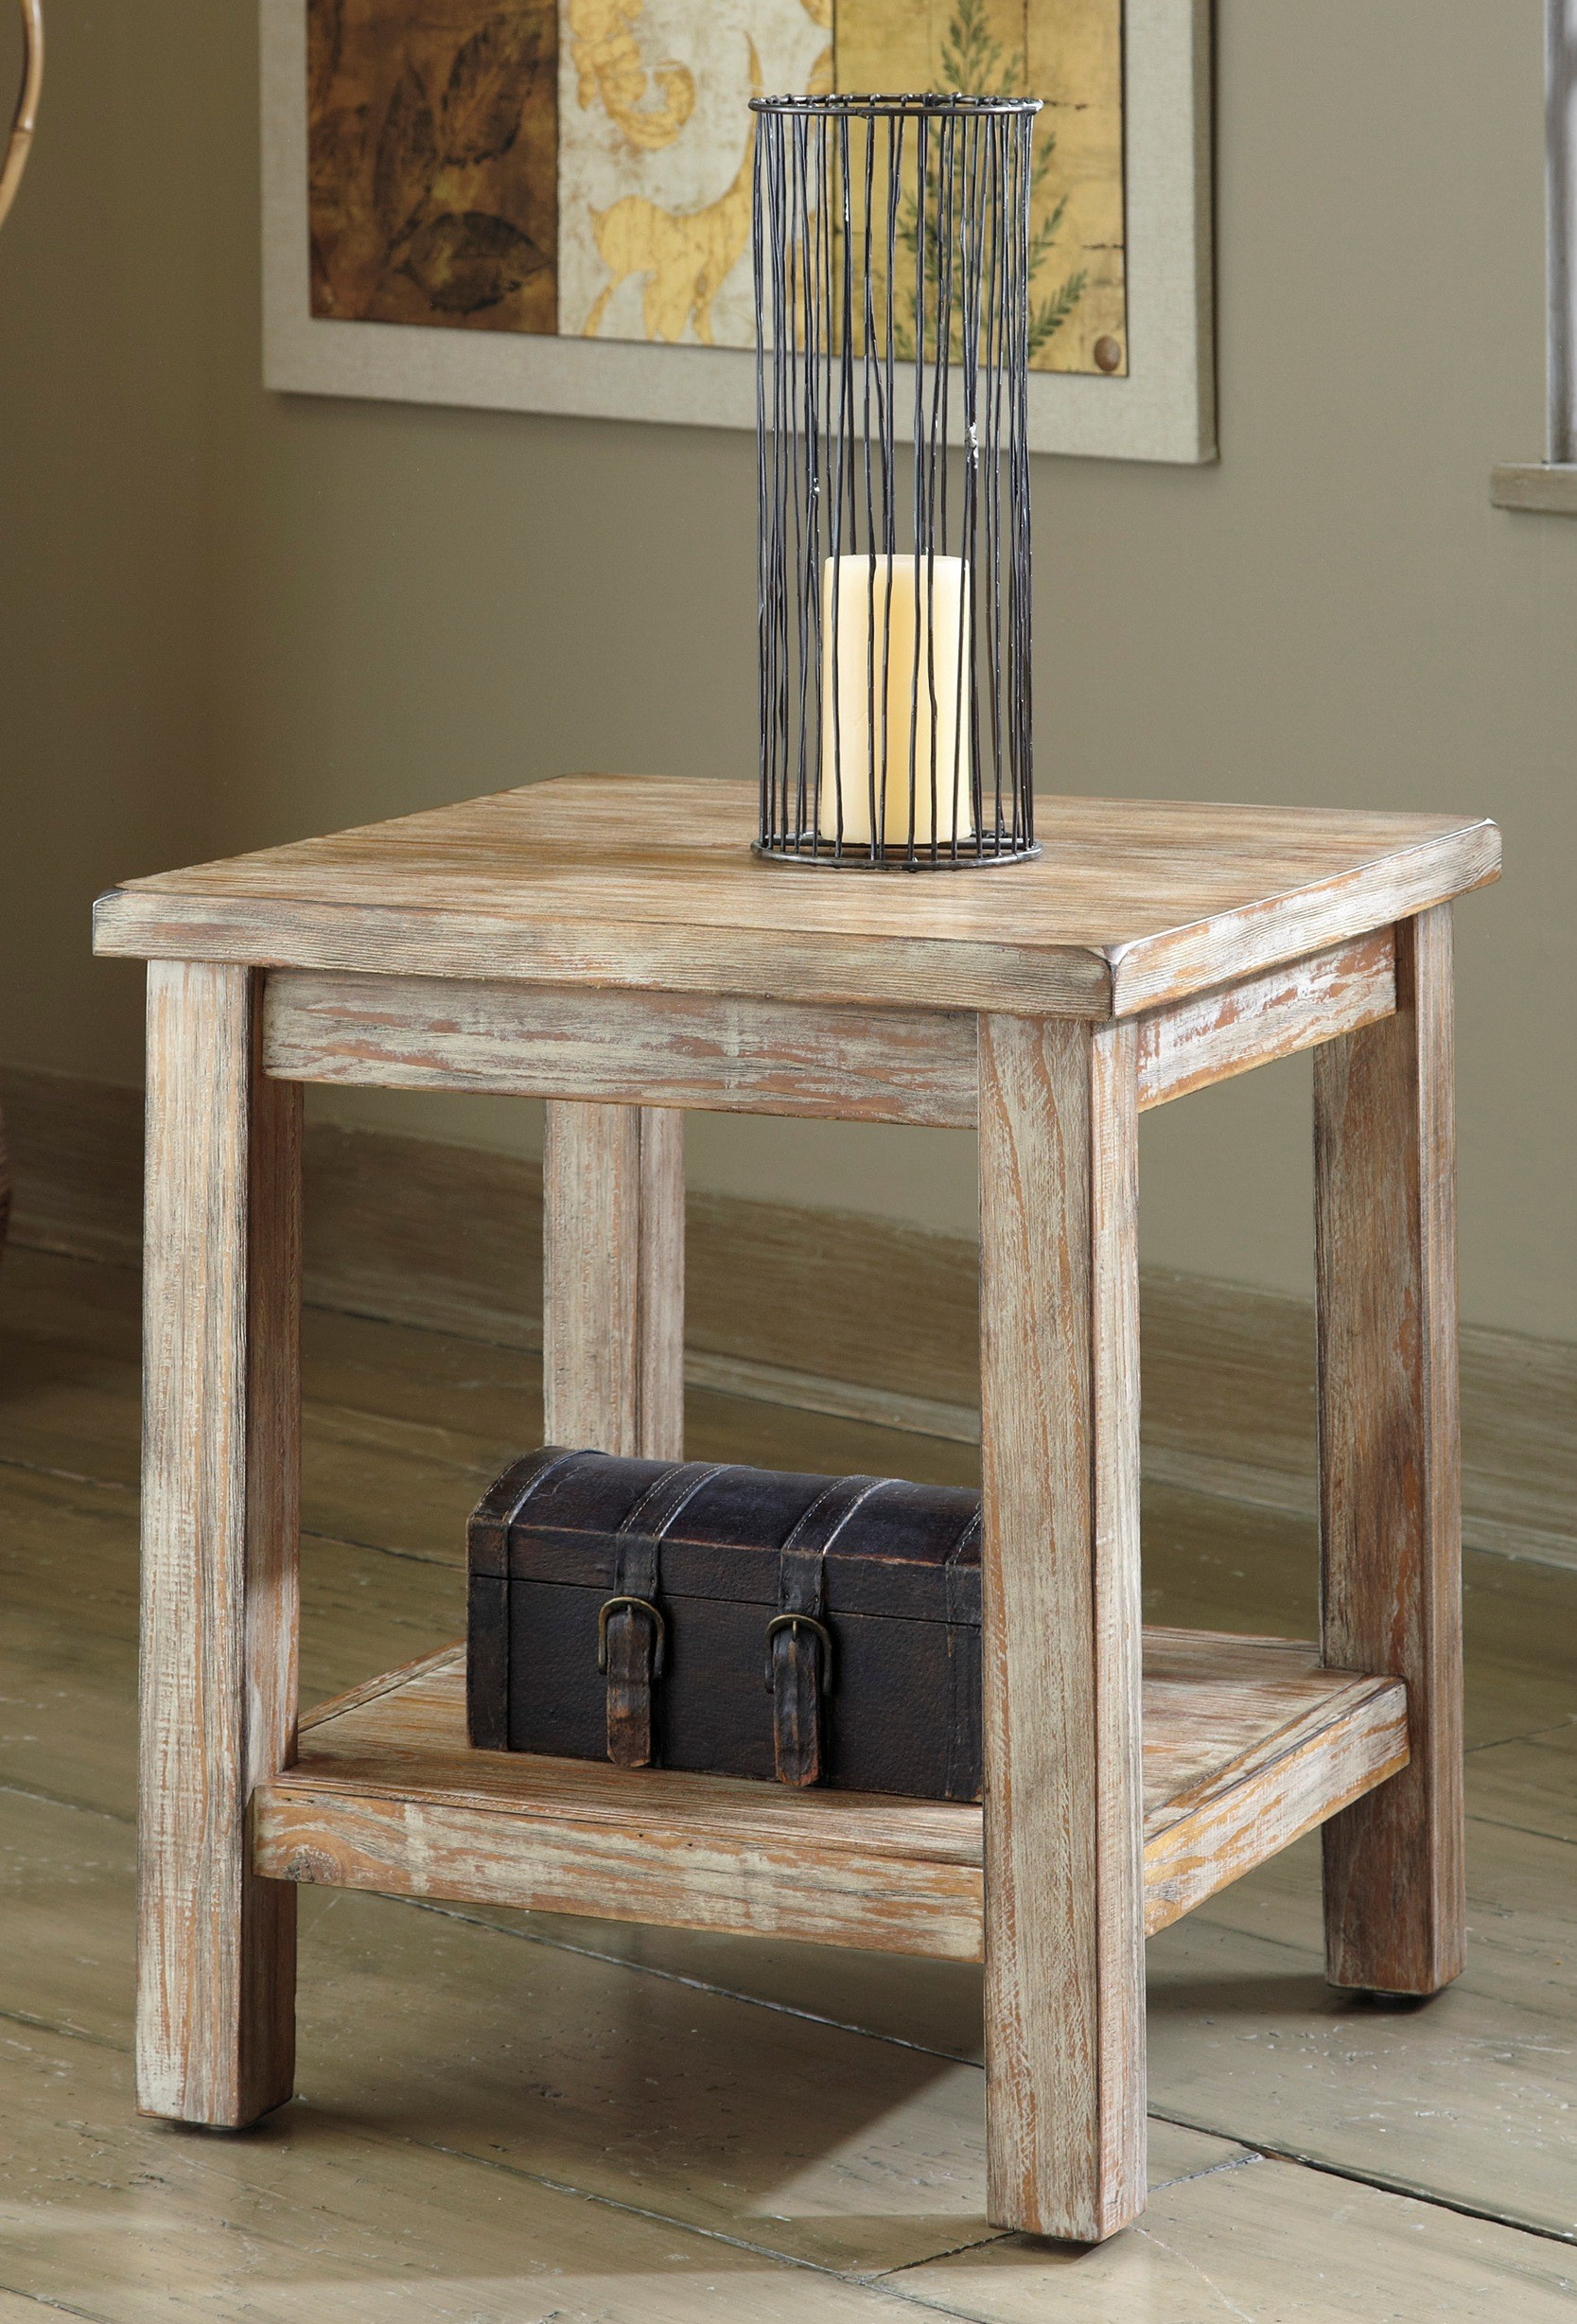 high tech light wood end tables ashley furniture rustic accents chair side table white oak sofas for small rooms contemporary accent chairs marble top with storage ikea nesting